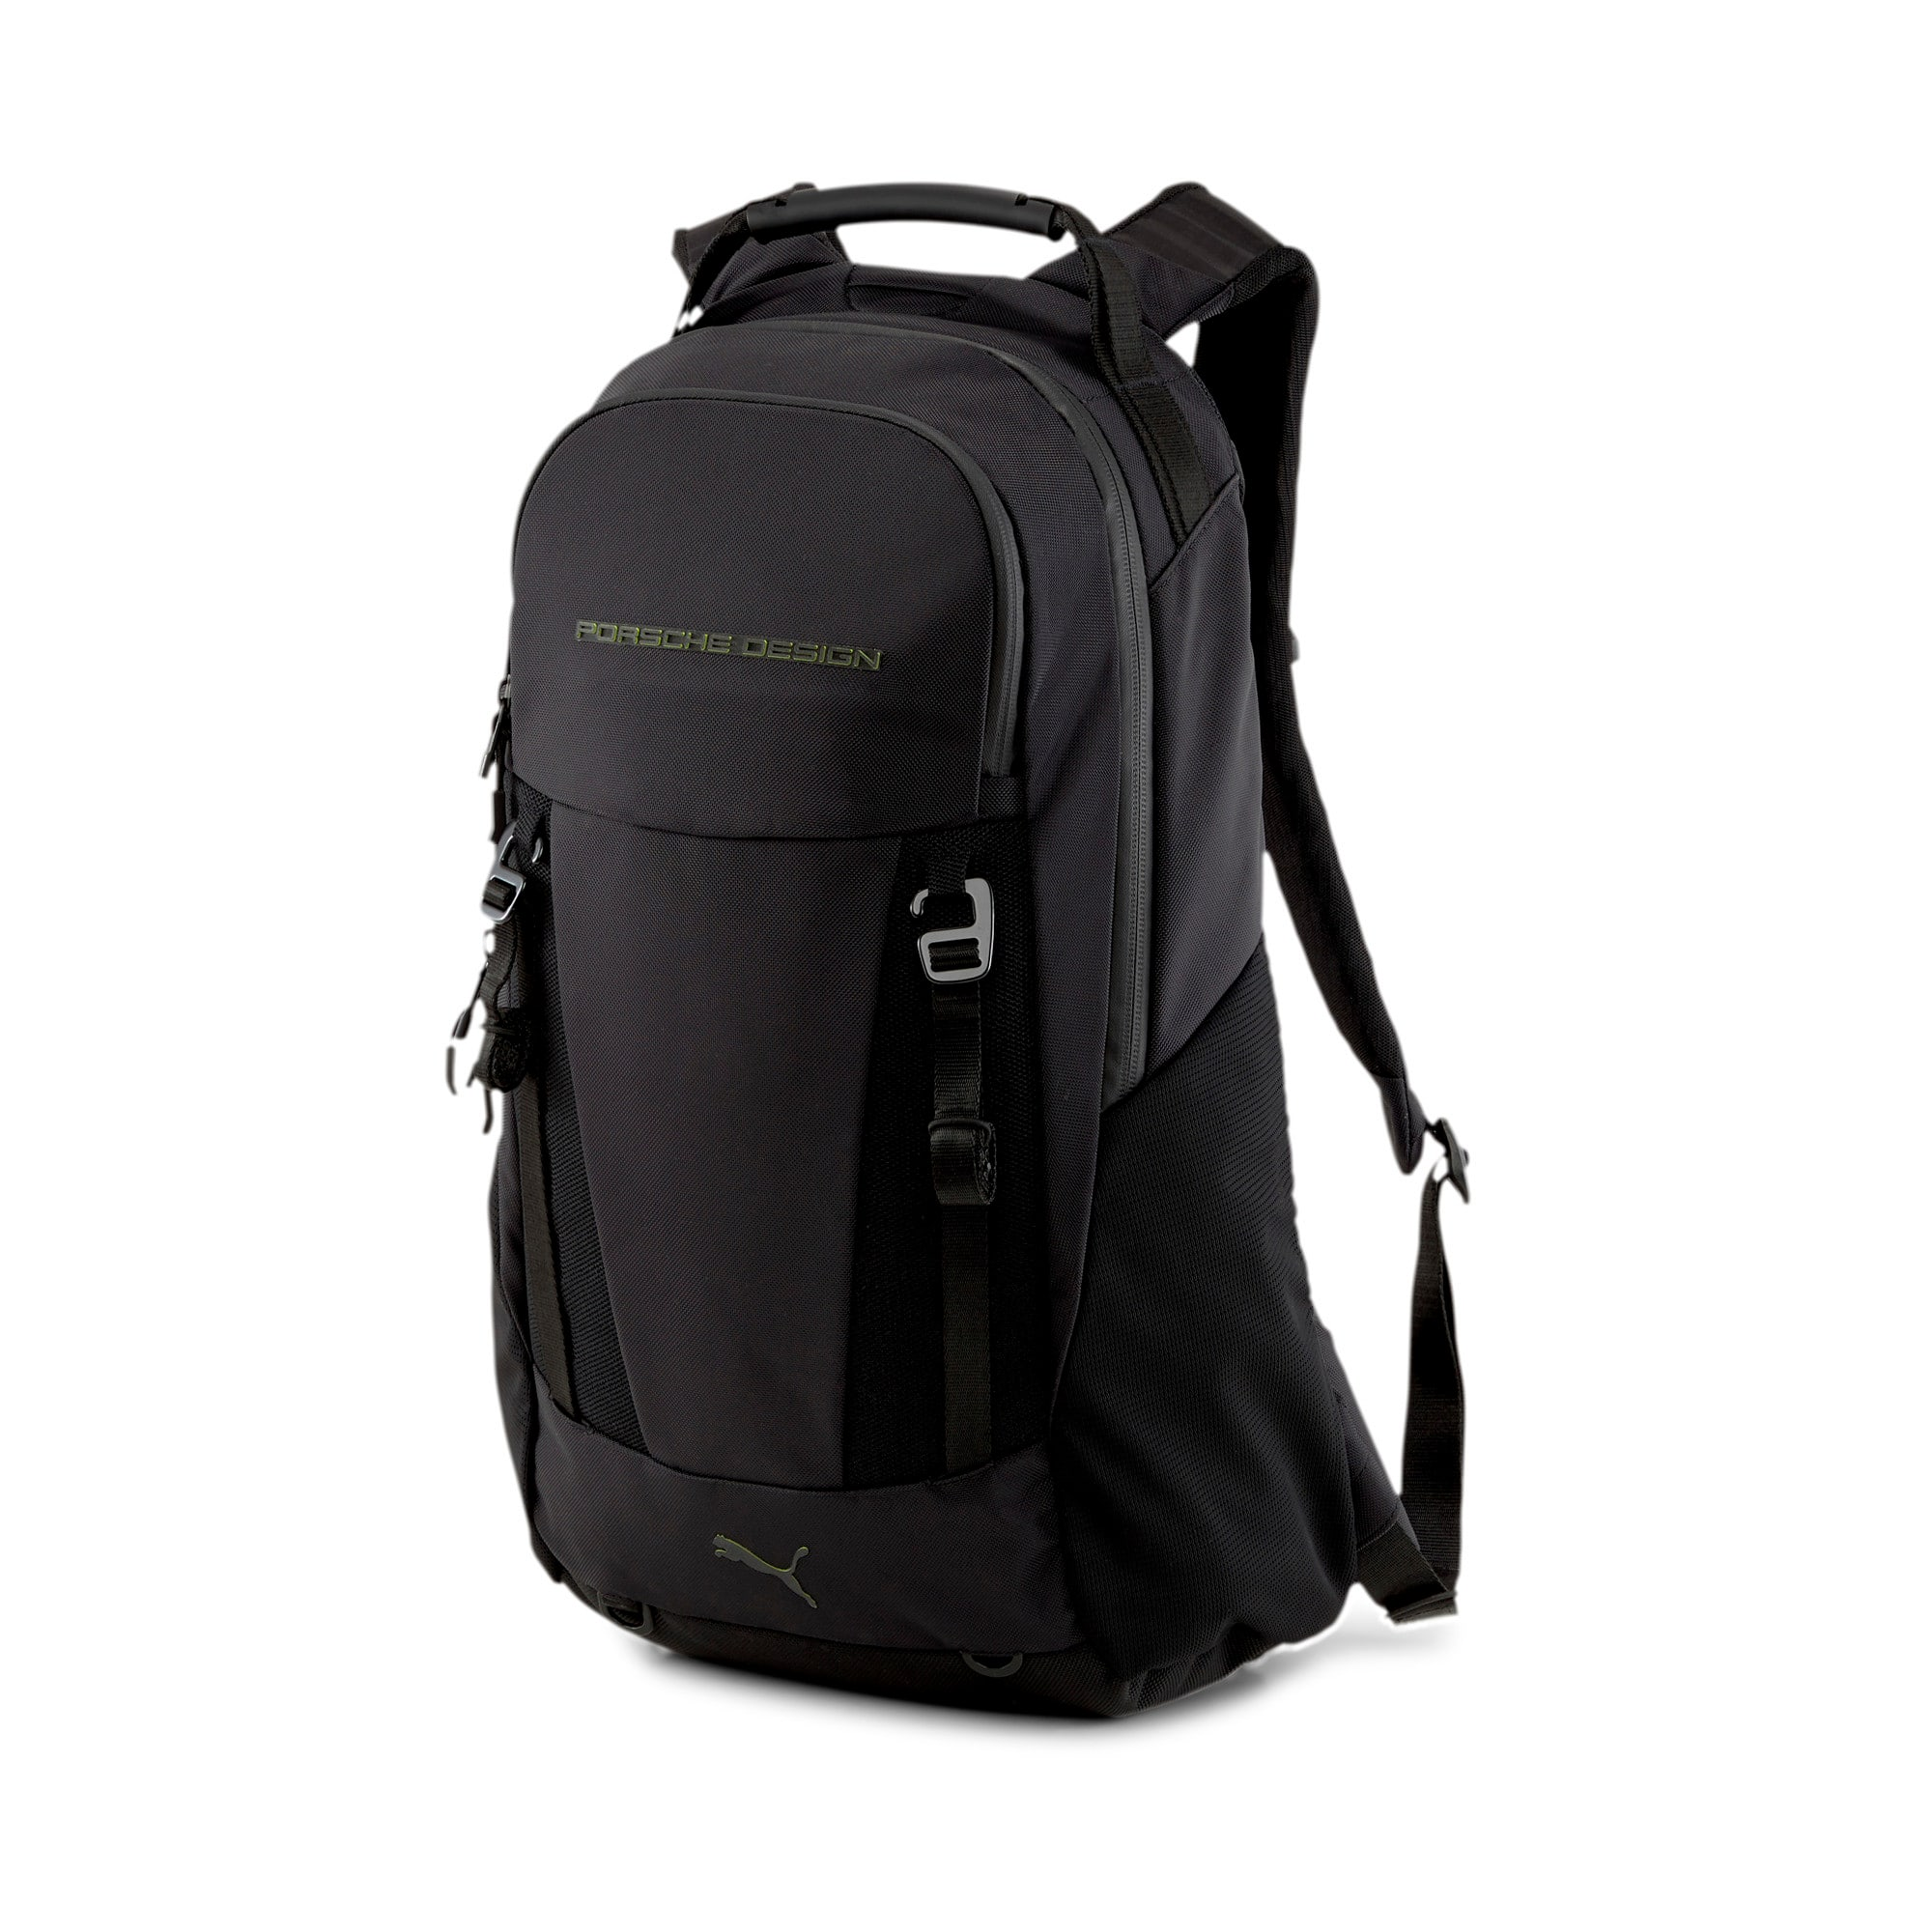 Thumbnail 1 of Porsche Design evoKNIT Active Backpack, Puma Black, medium